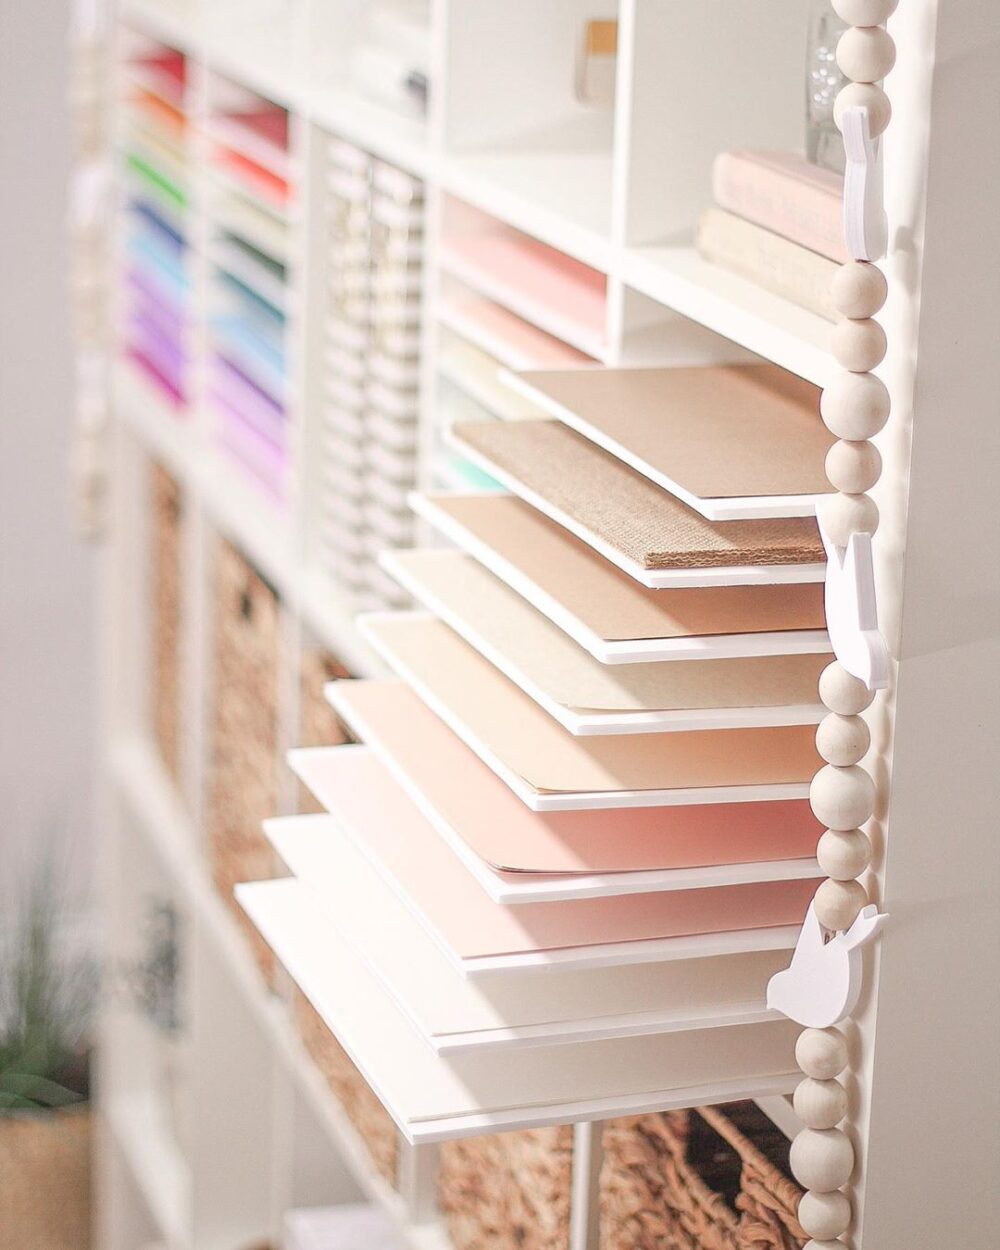 Craft Room Organization Ideas & Storage Tips